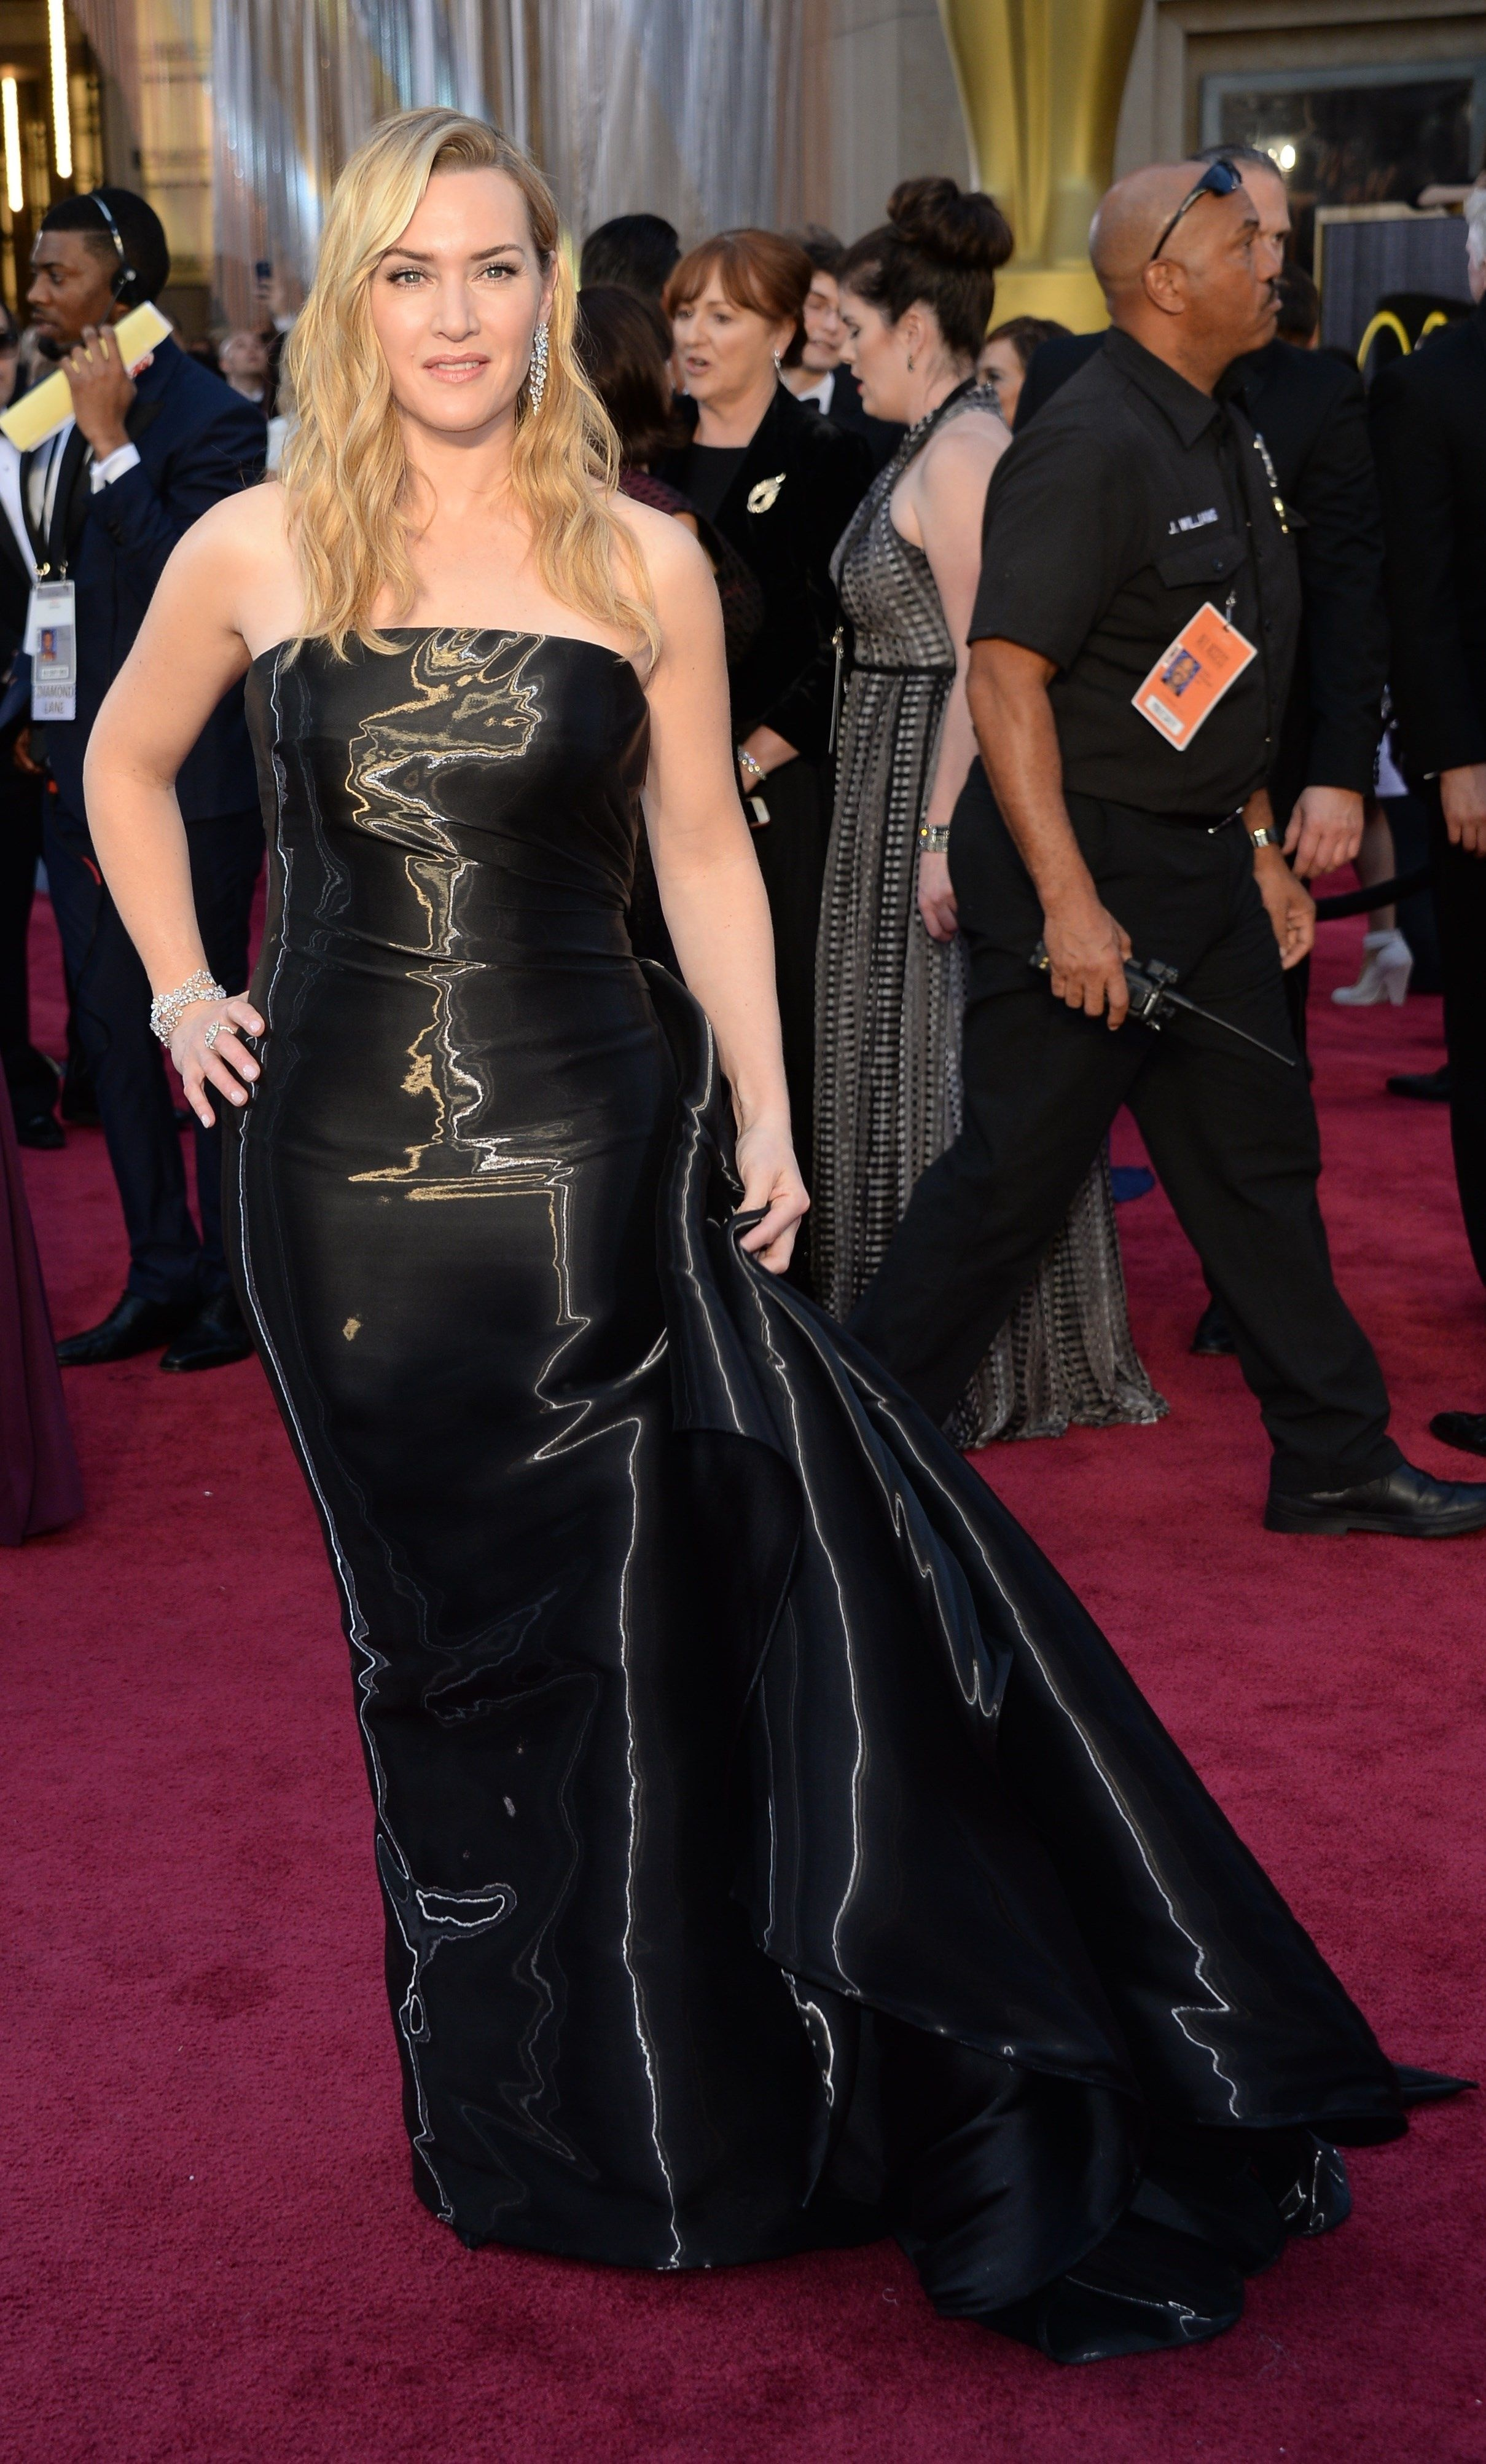 kate_winslet_arrives_on_the_red_carpet_for_the_88th_oscars_on